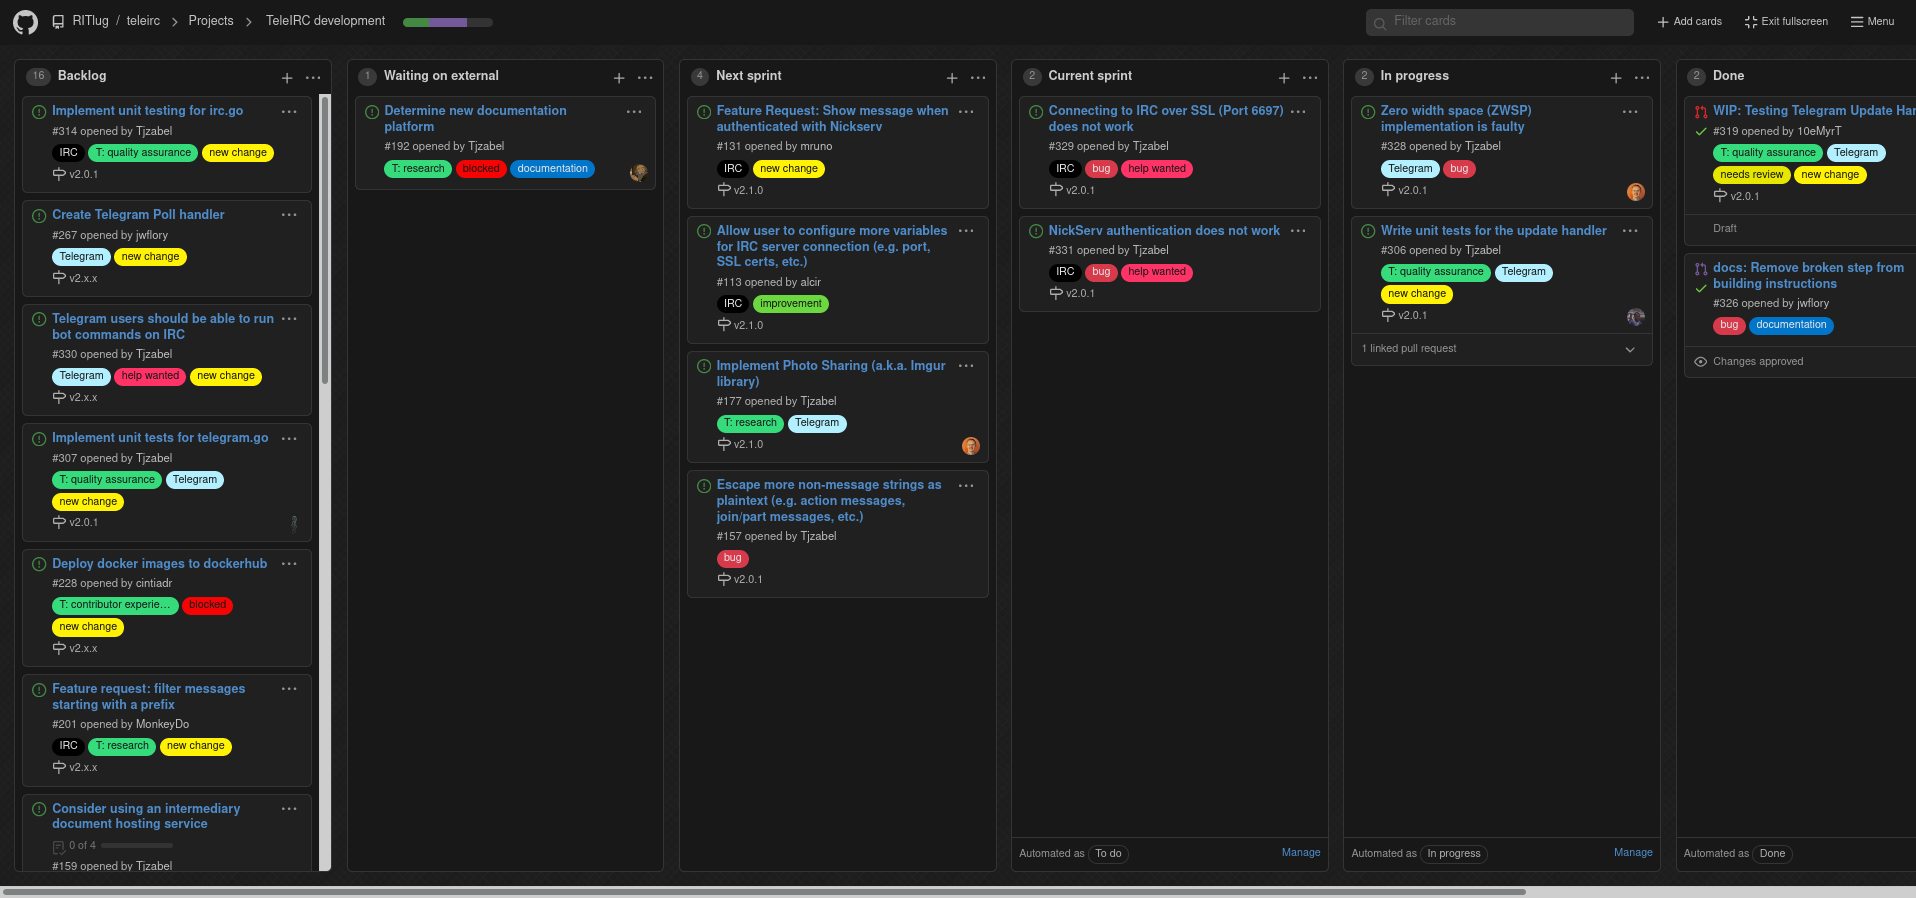 July 2020 screenshot of TeleIRC GitHub developer project board (click to open)